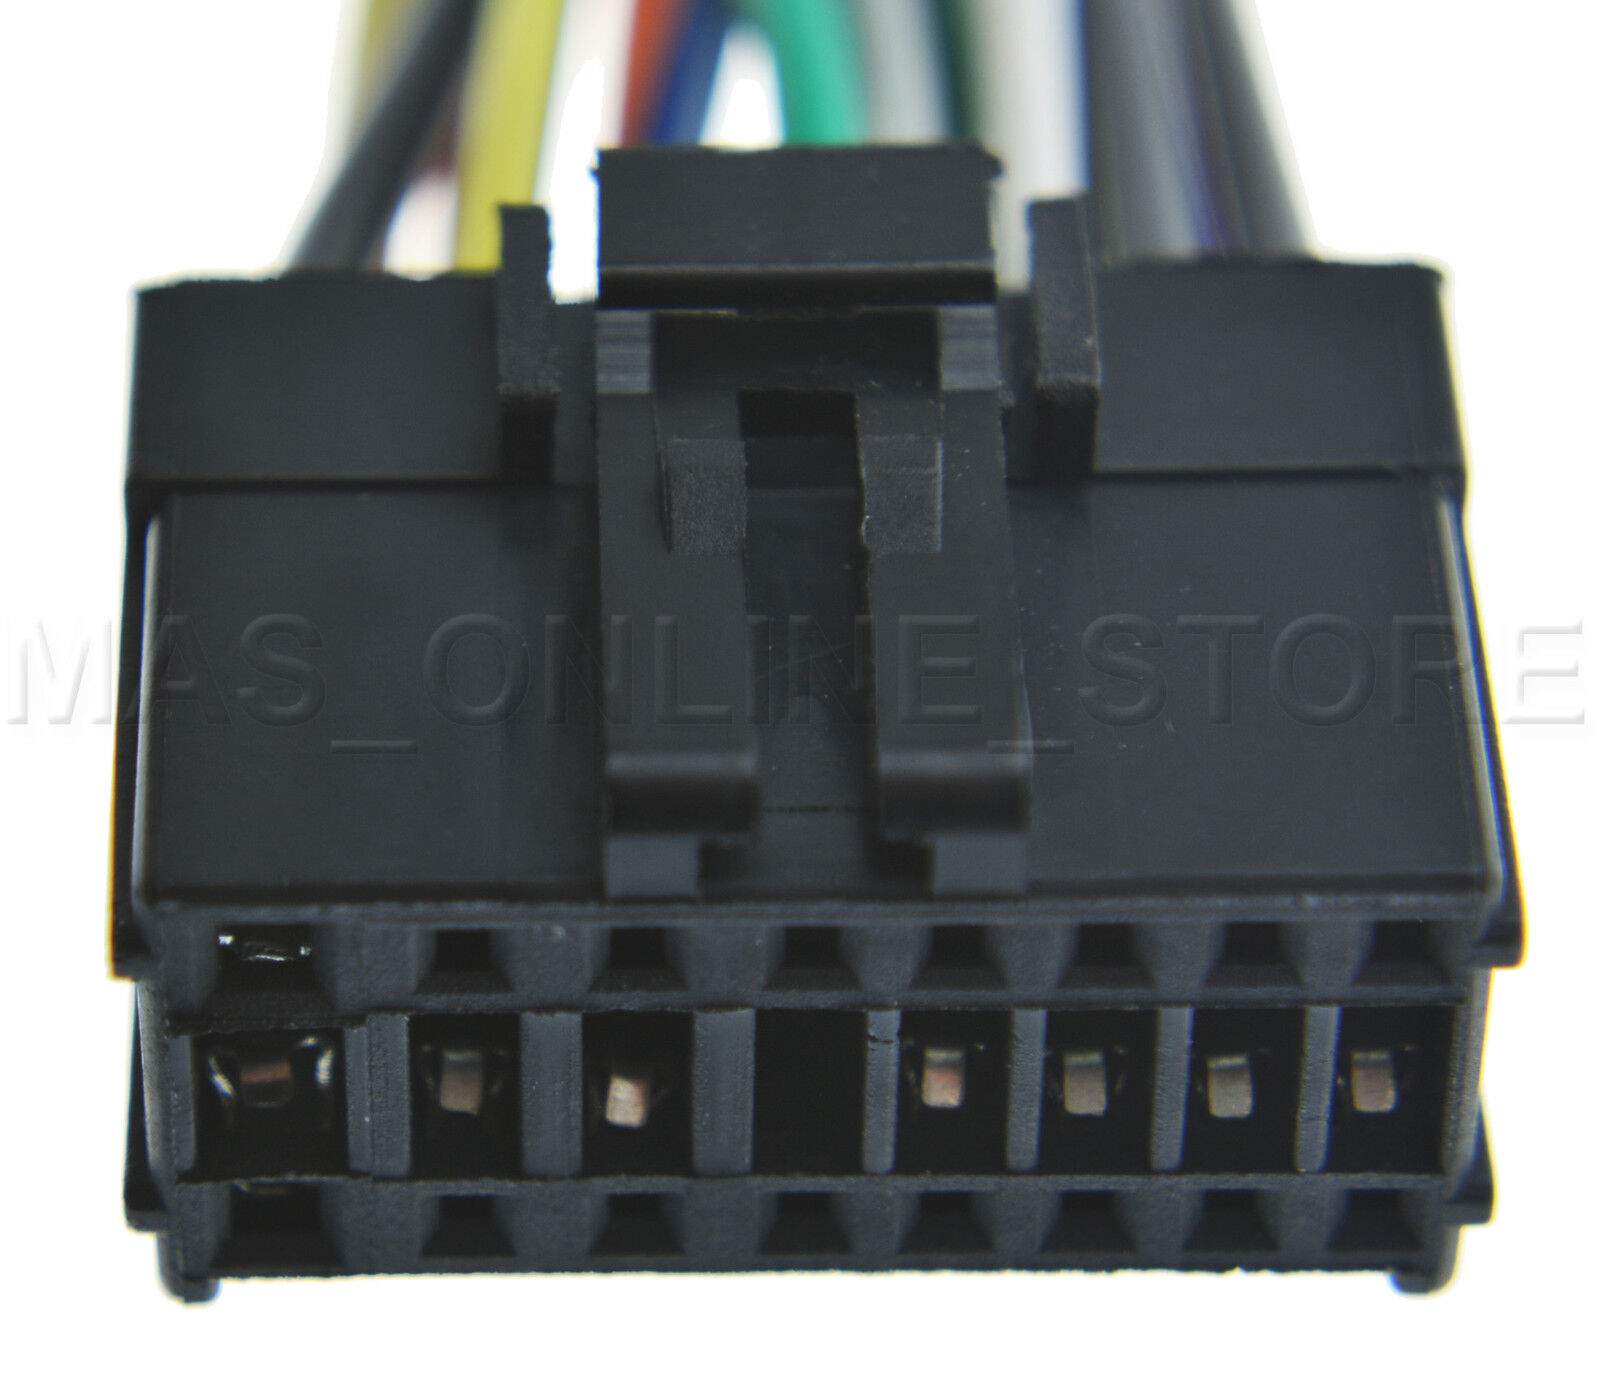 2 of 4 Wire Harness For Pioneer Avh-P4400Bh Avhp4400Bh *pay Today Ships  Today* 3 of 4 Wire Harness For Pioneer Avh-P4400Bh ...